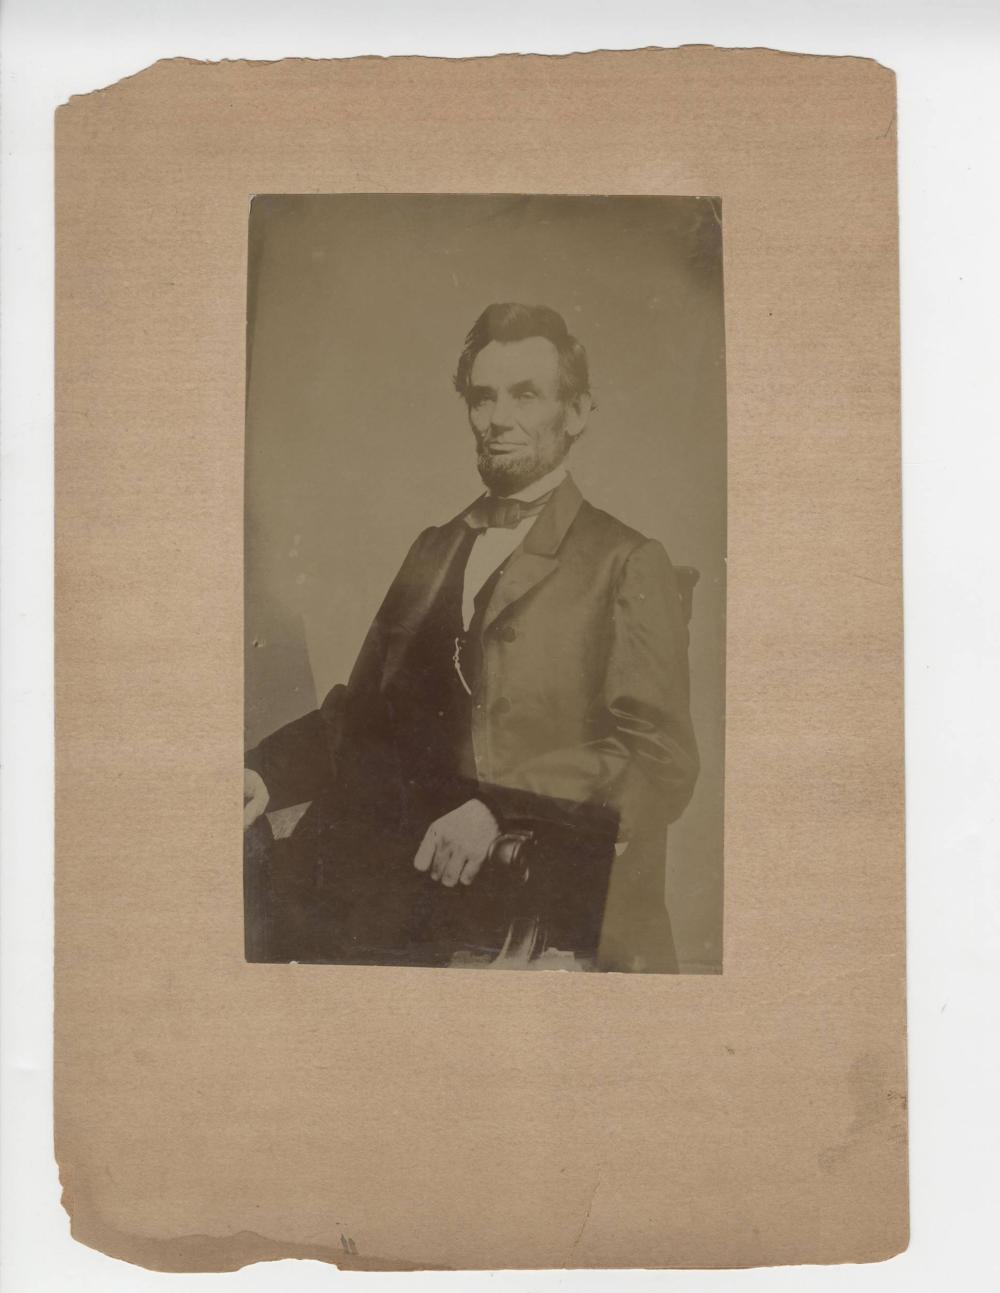 Abraham Lincoln Photo, Circa 1890, Ex. Forbes